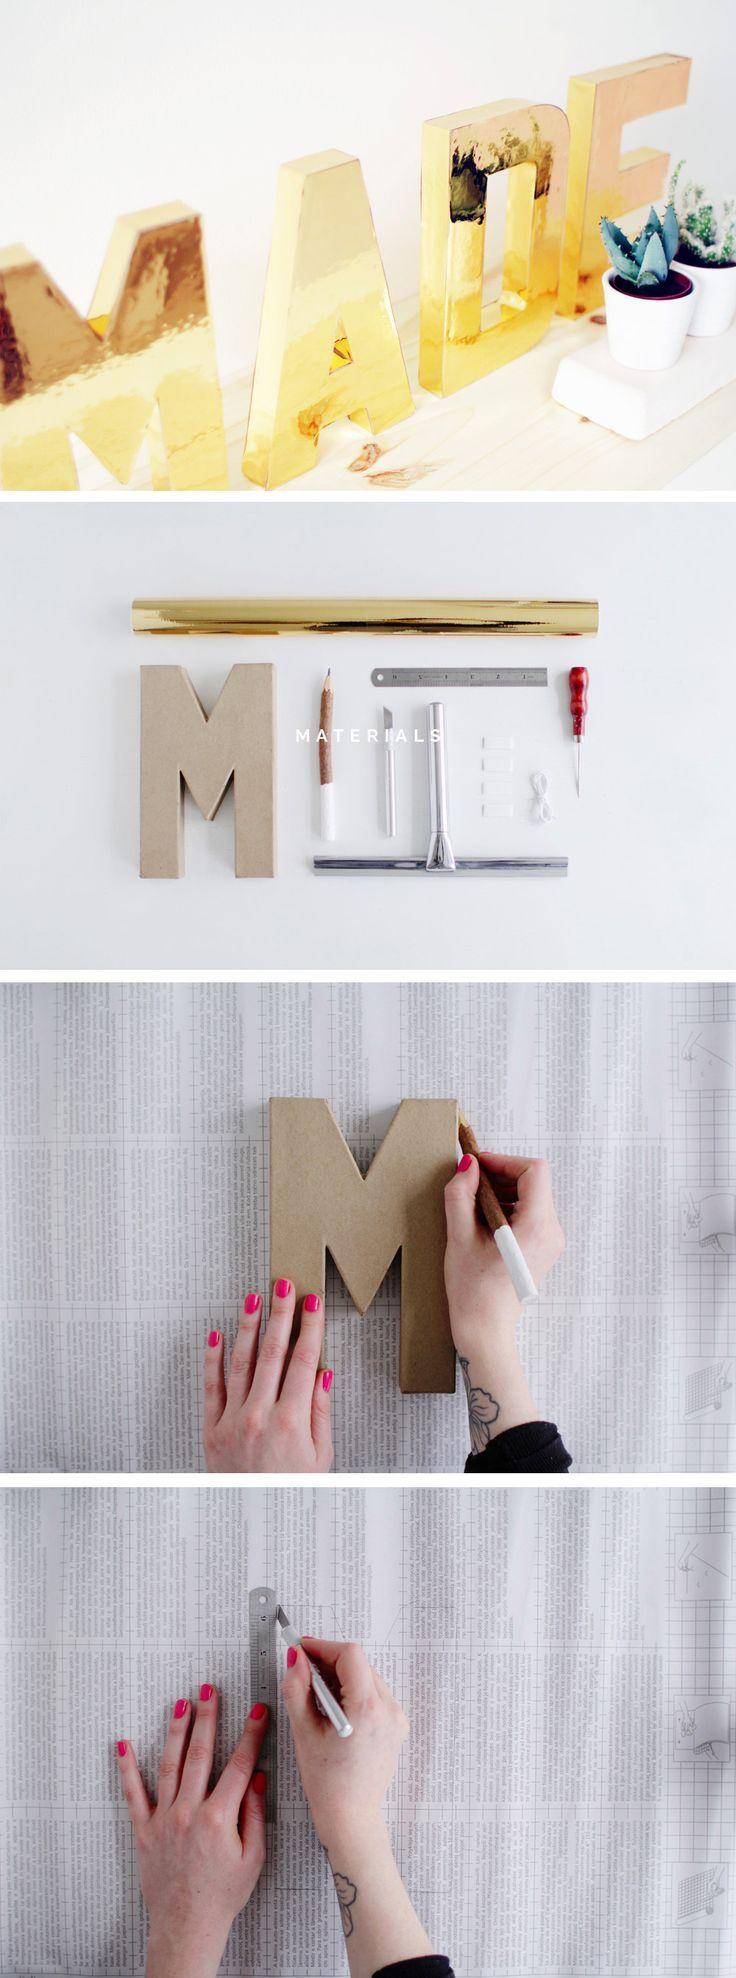 DIY Solid Gold Letters       http://fallfordiy.com/blog/2015/05/26/diy-solid-gold-letters/